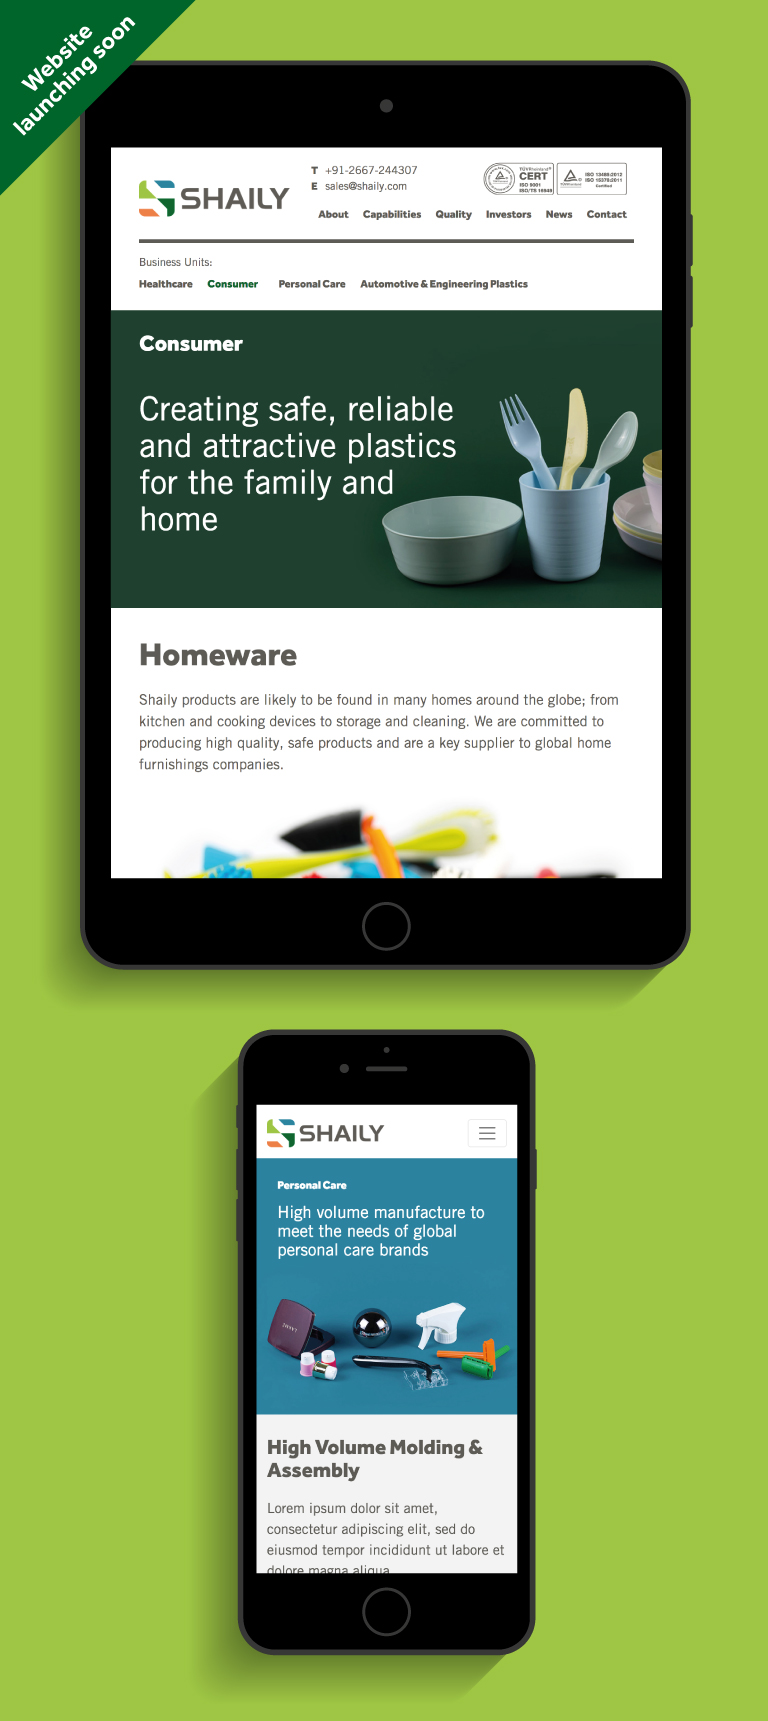 The Shaily website on an iPad and iPhone - mobile